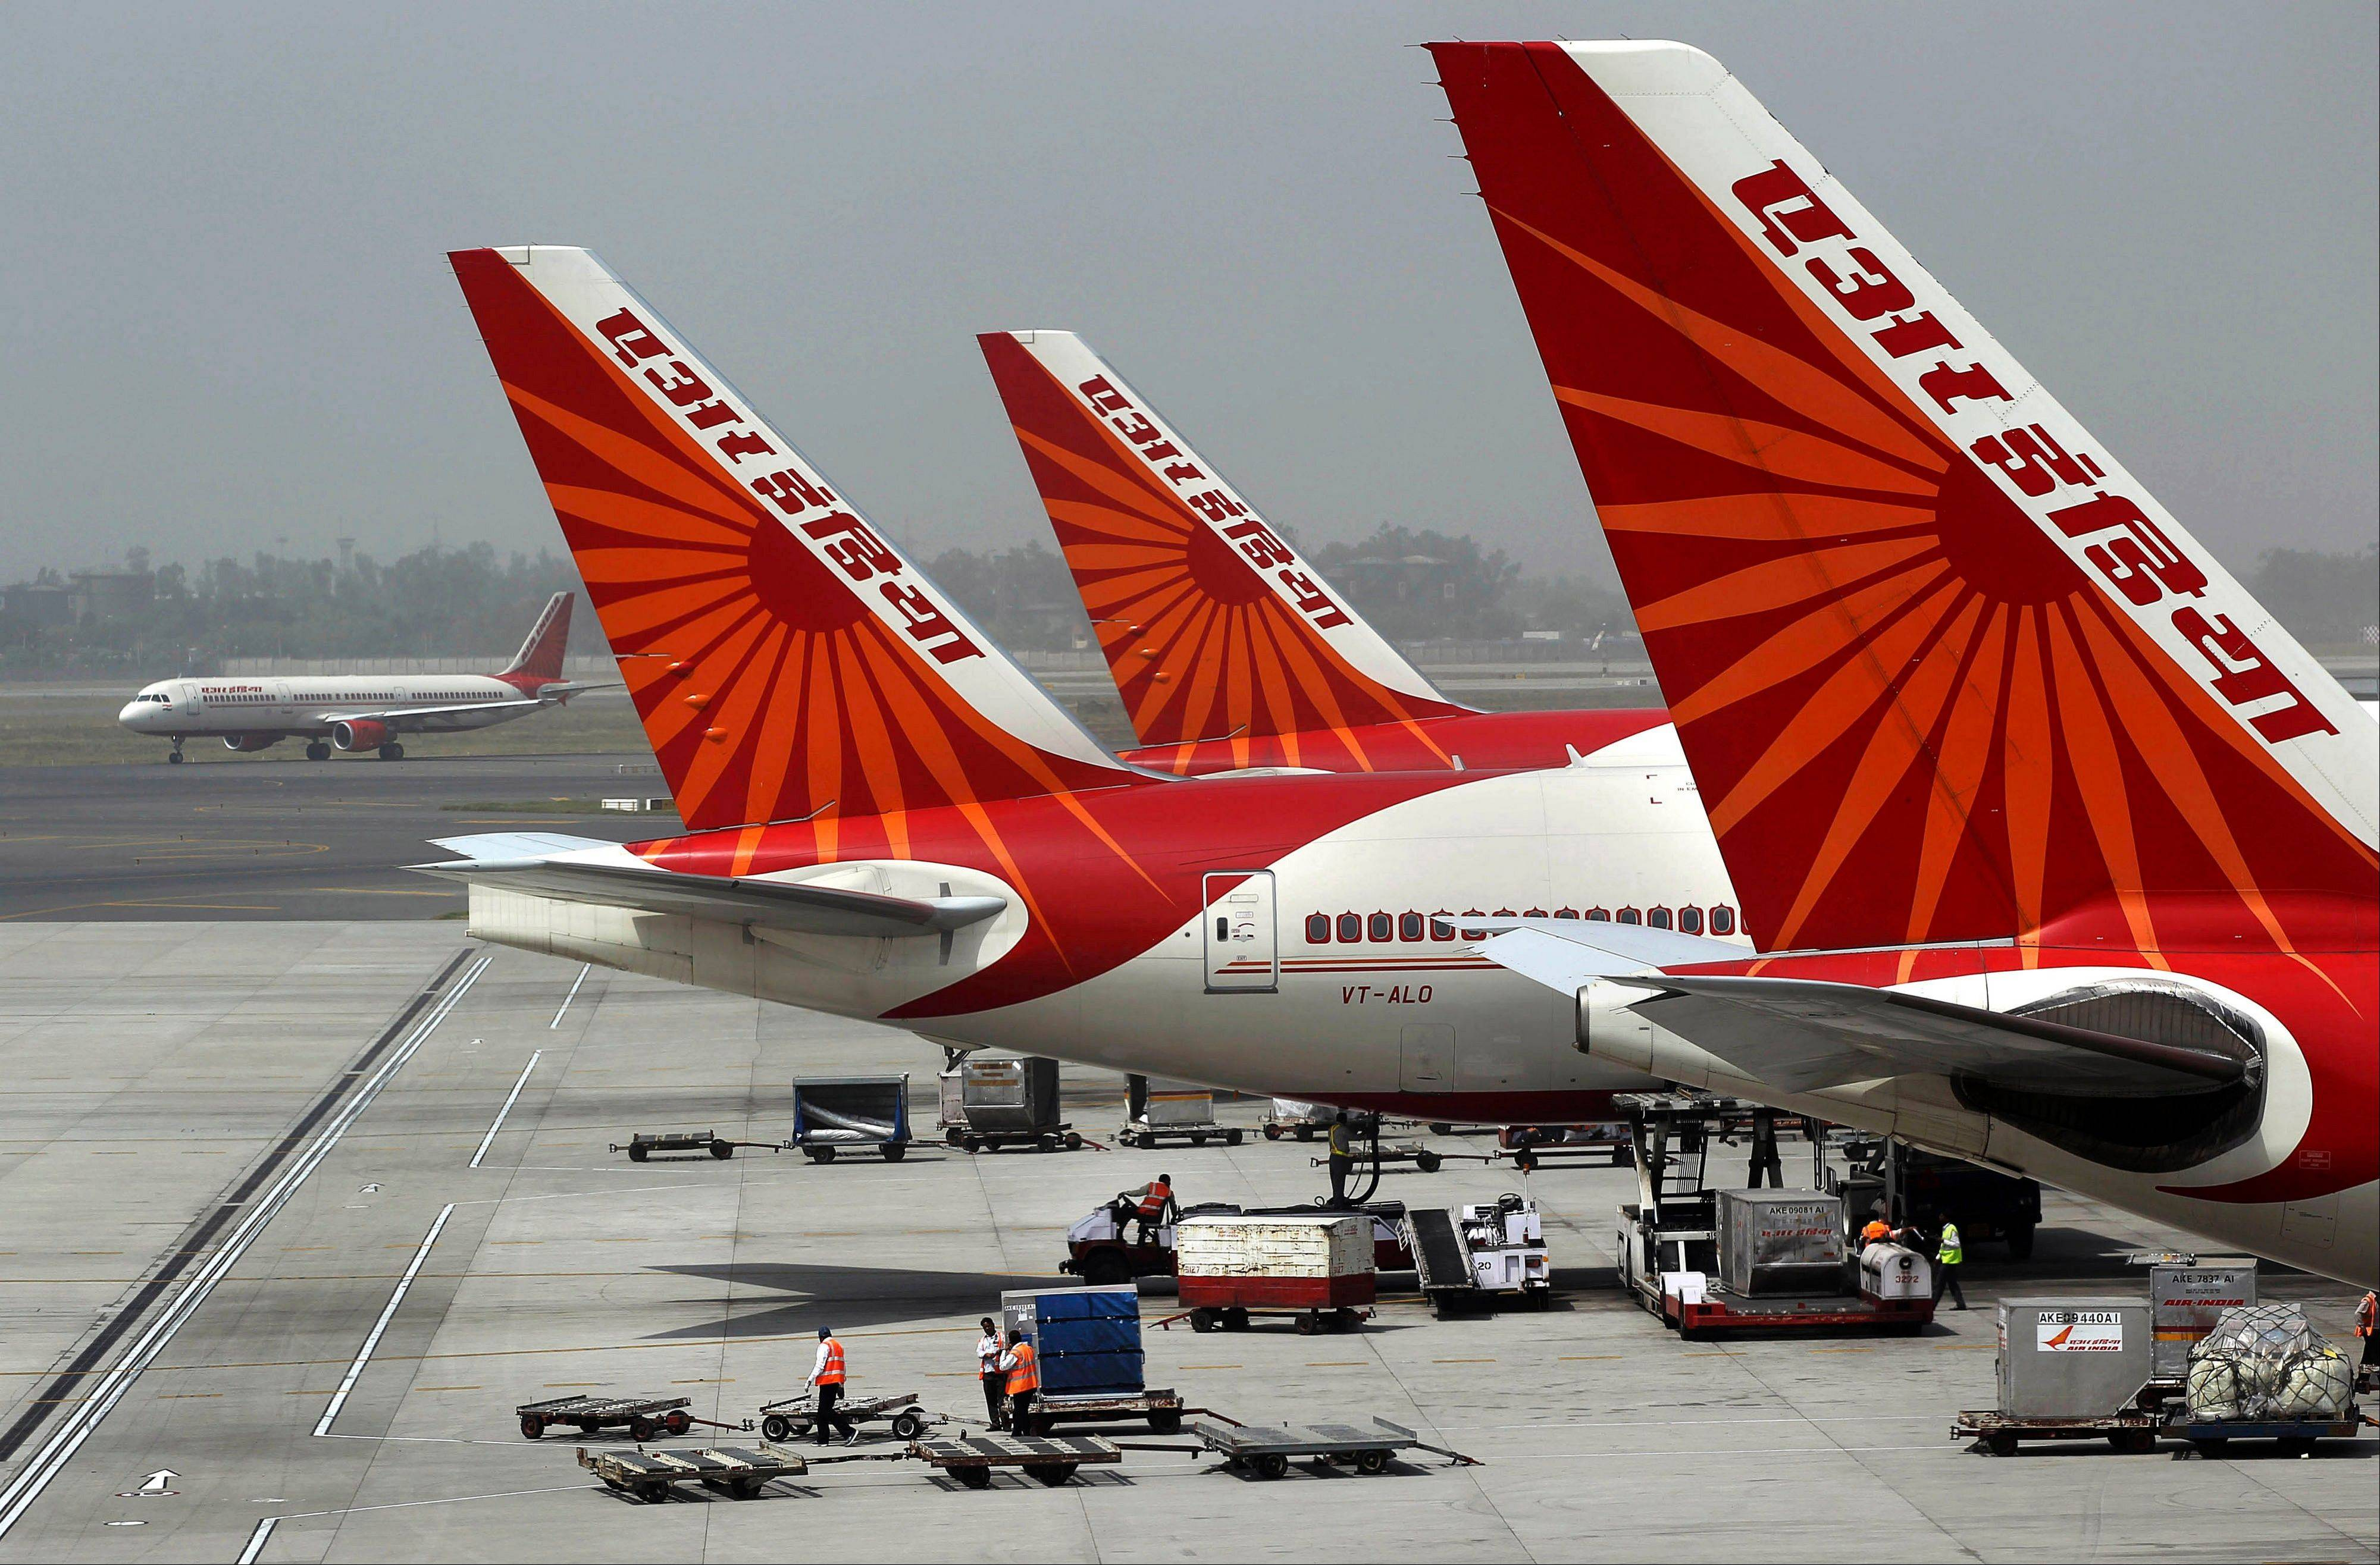 Boeing has forecast a $150 billion market for passenger airplanes in India over the next 20 years driven by a booming economy, a top Boeing official has said.